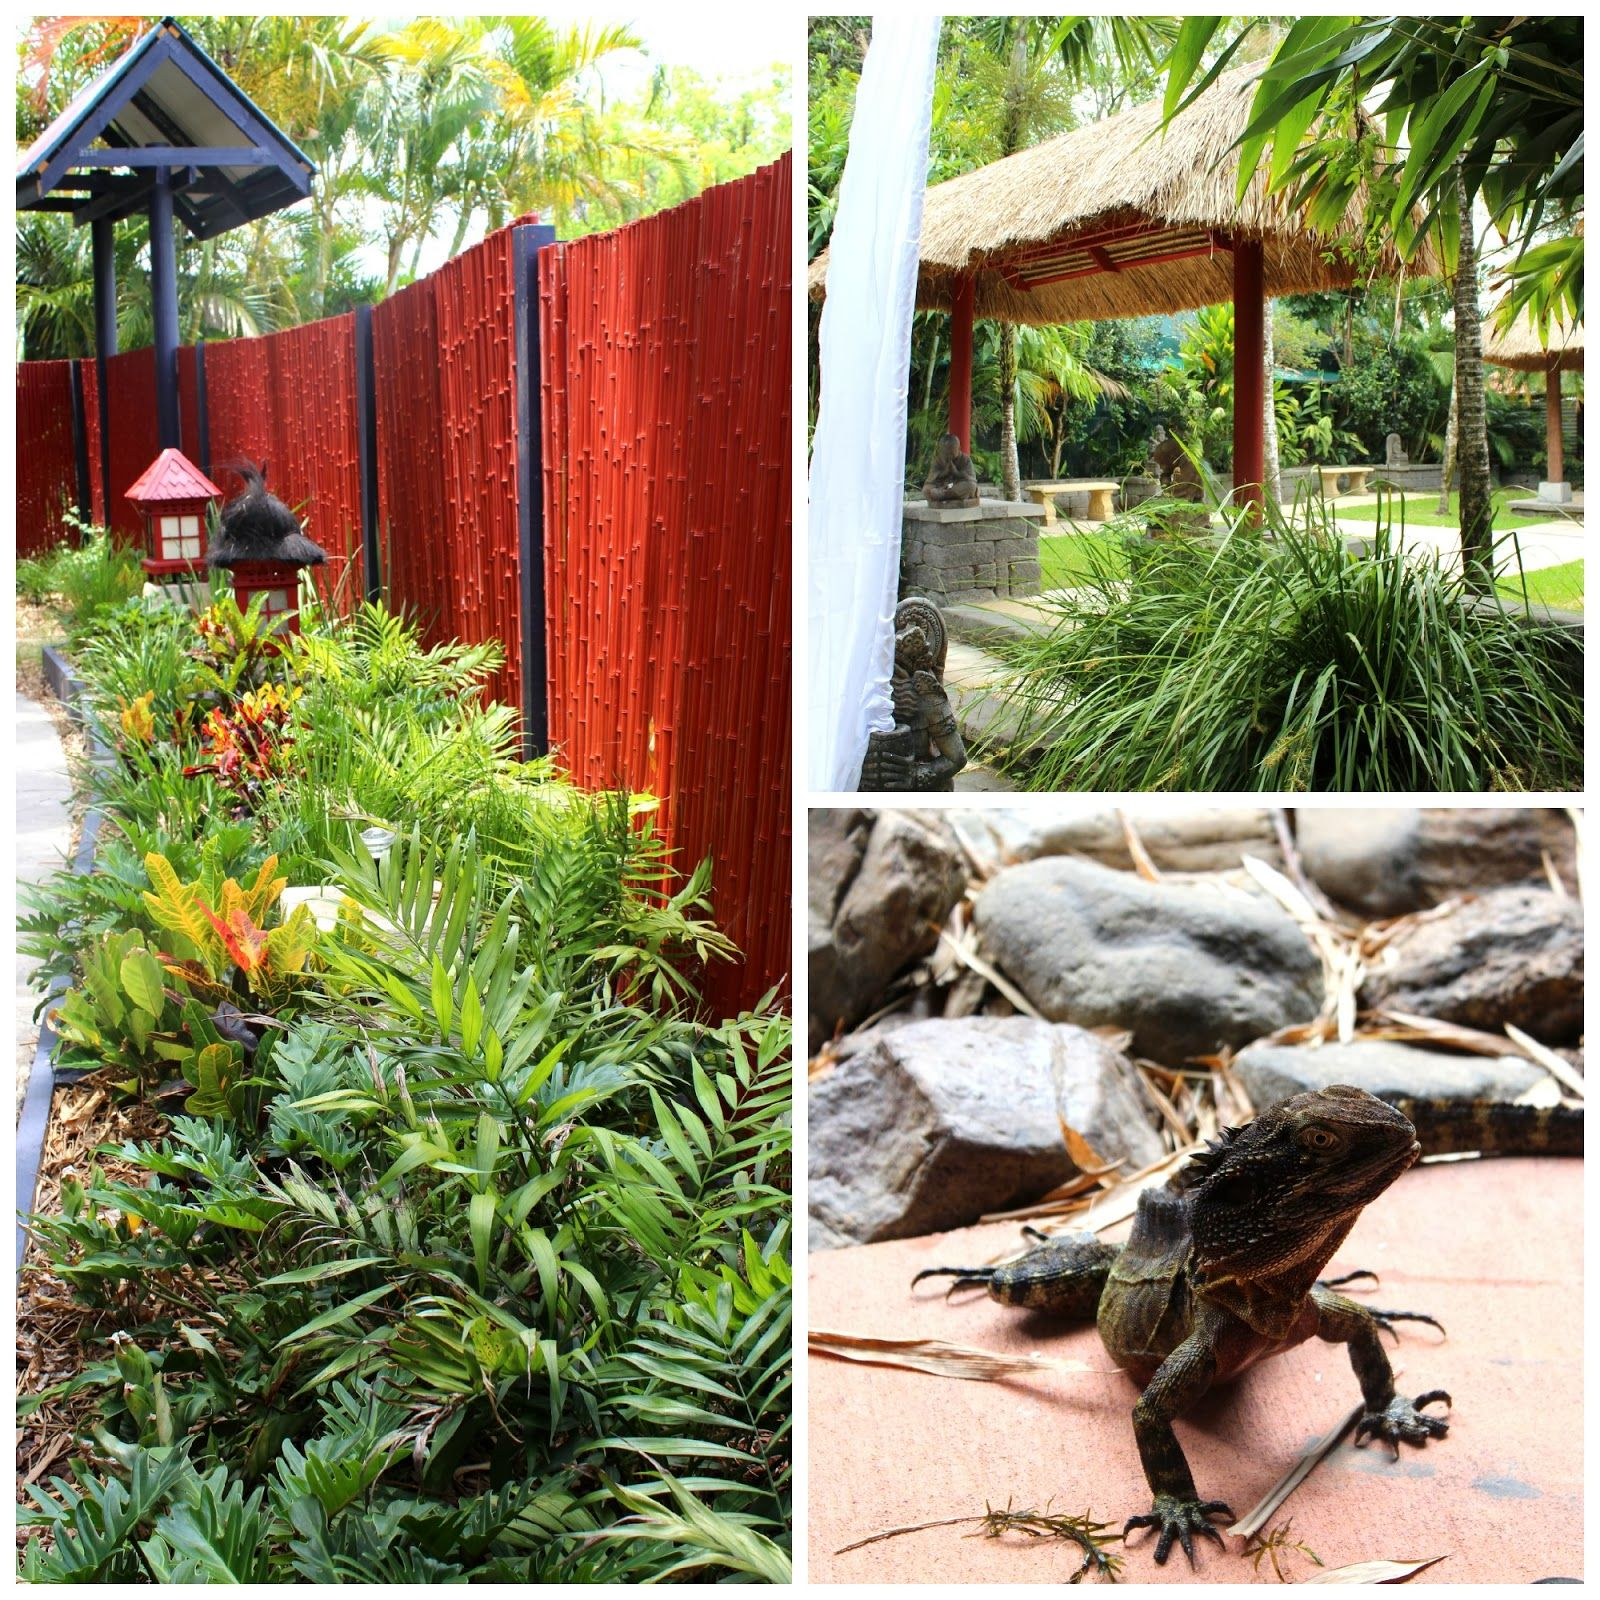 A Review of The Spirit House in Yandina